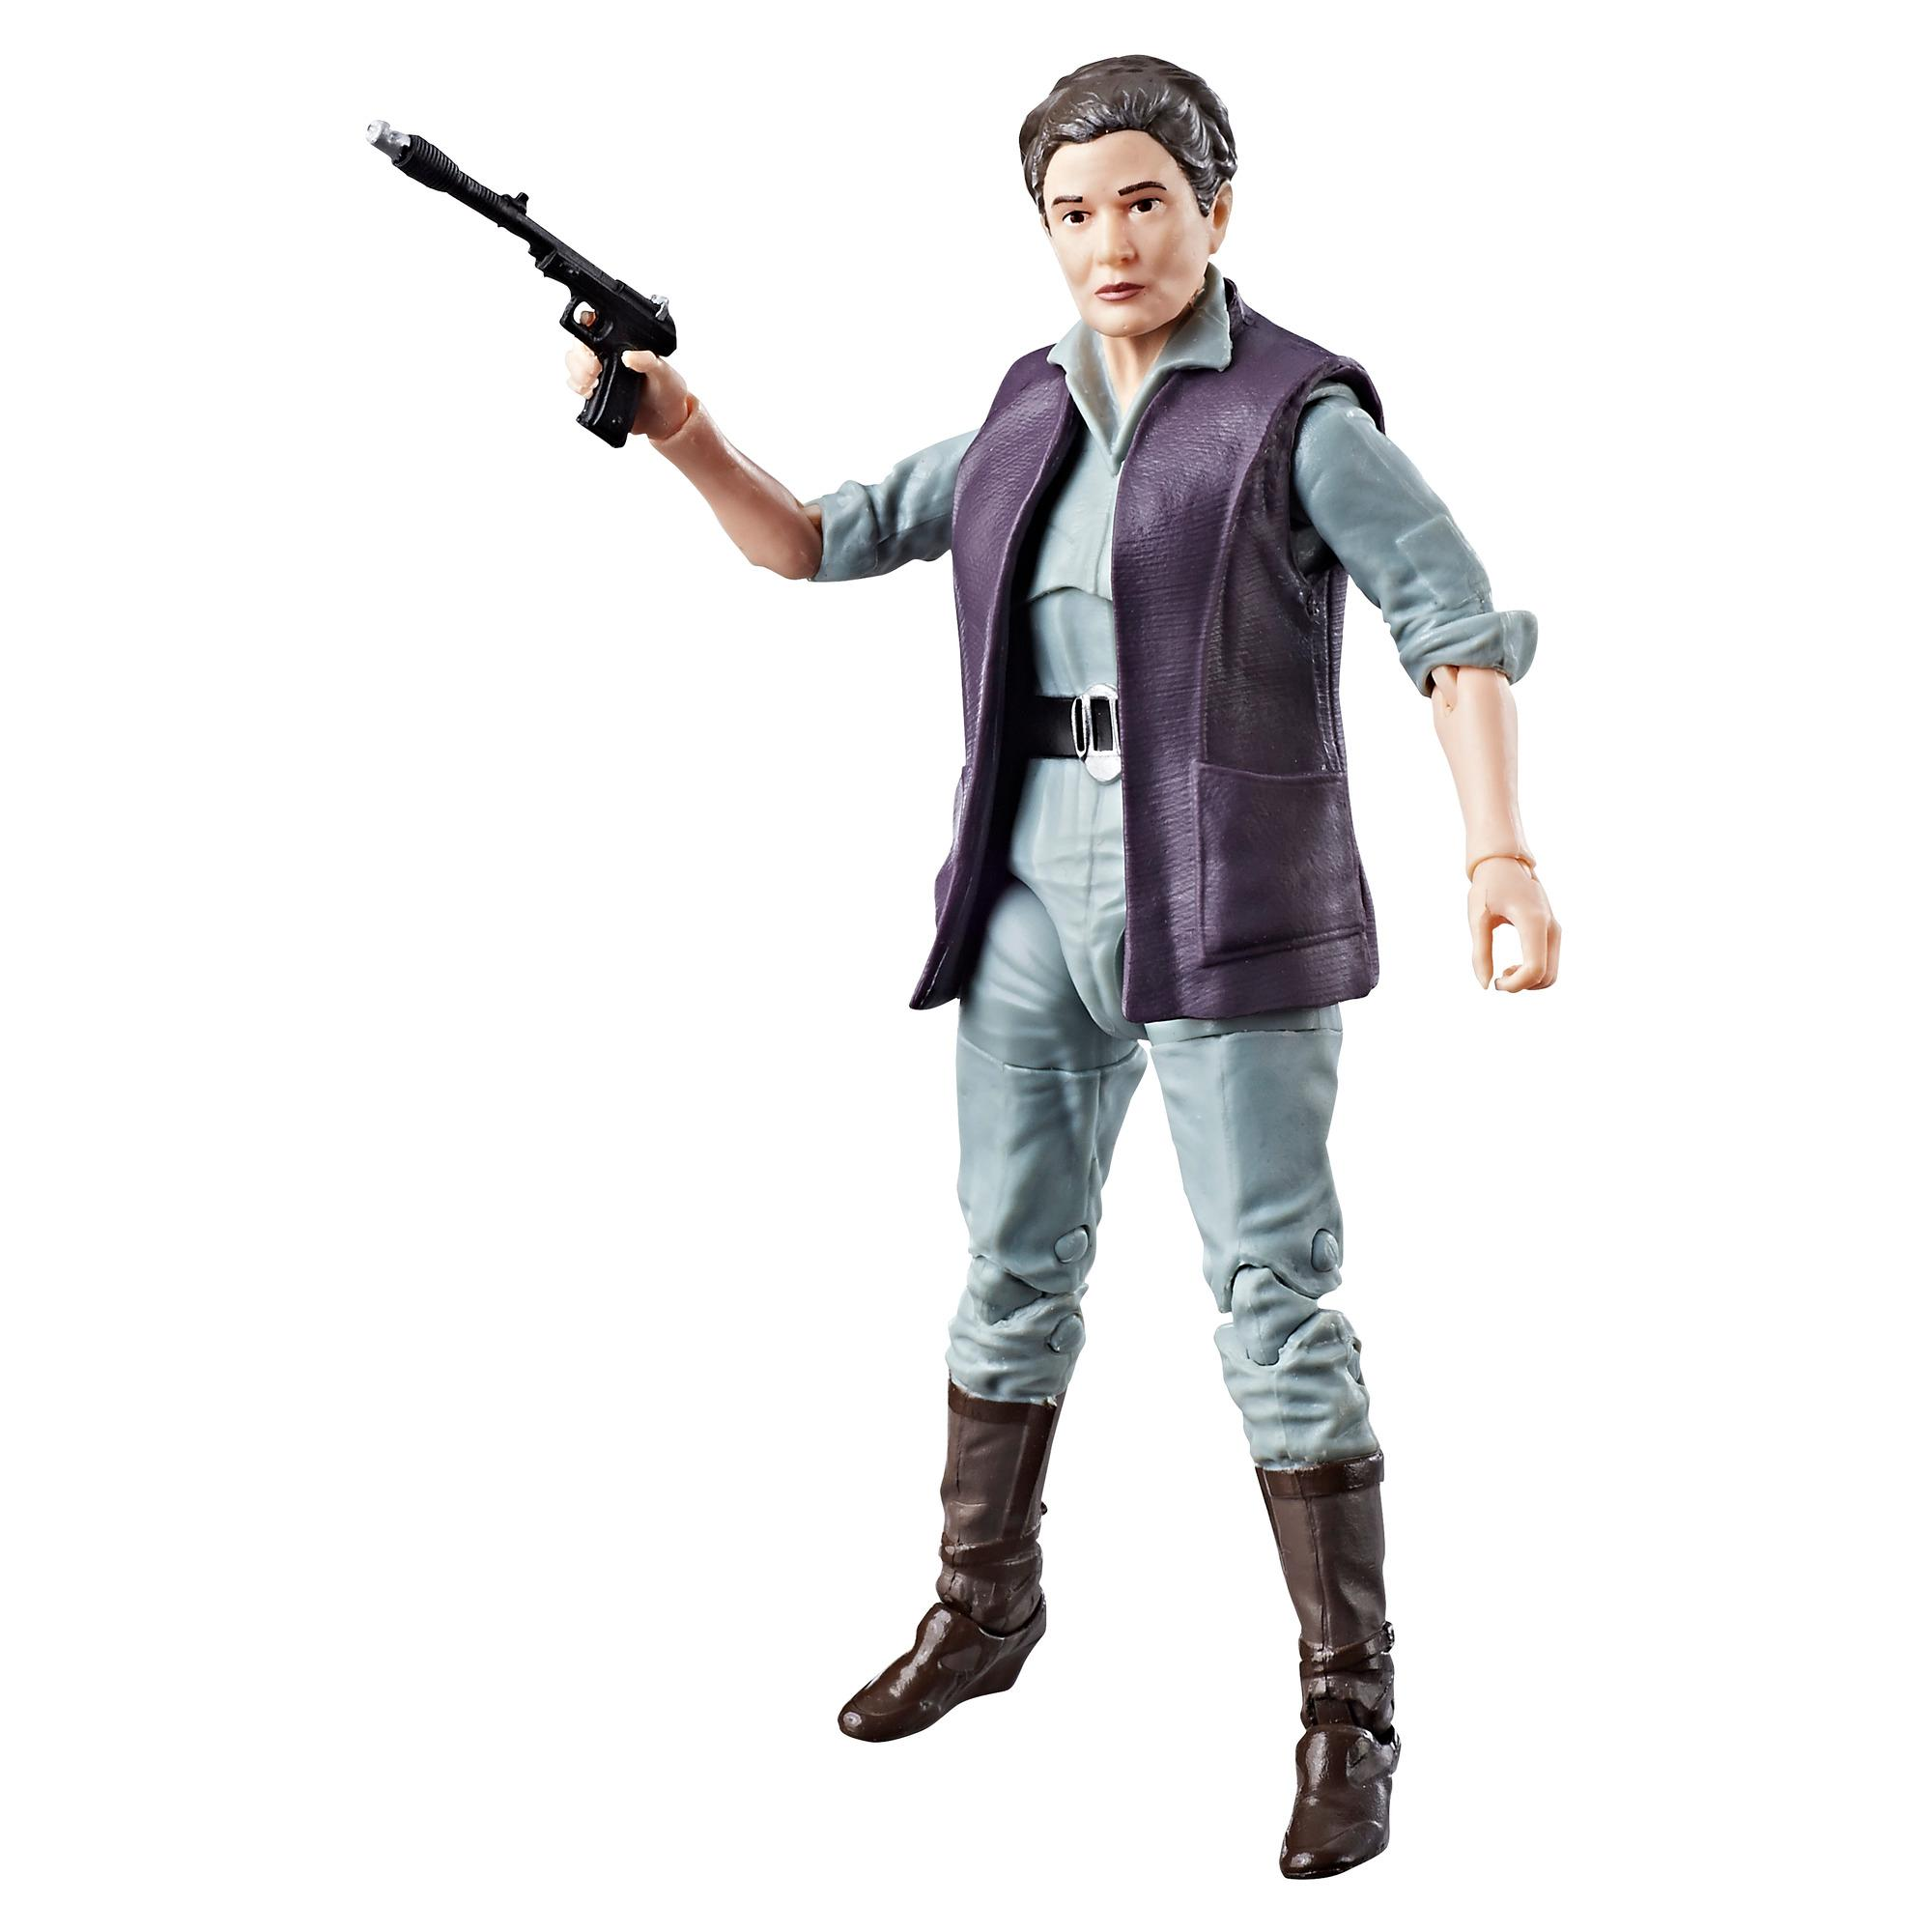 Star Wars The Black Series - General Leia Organa